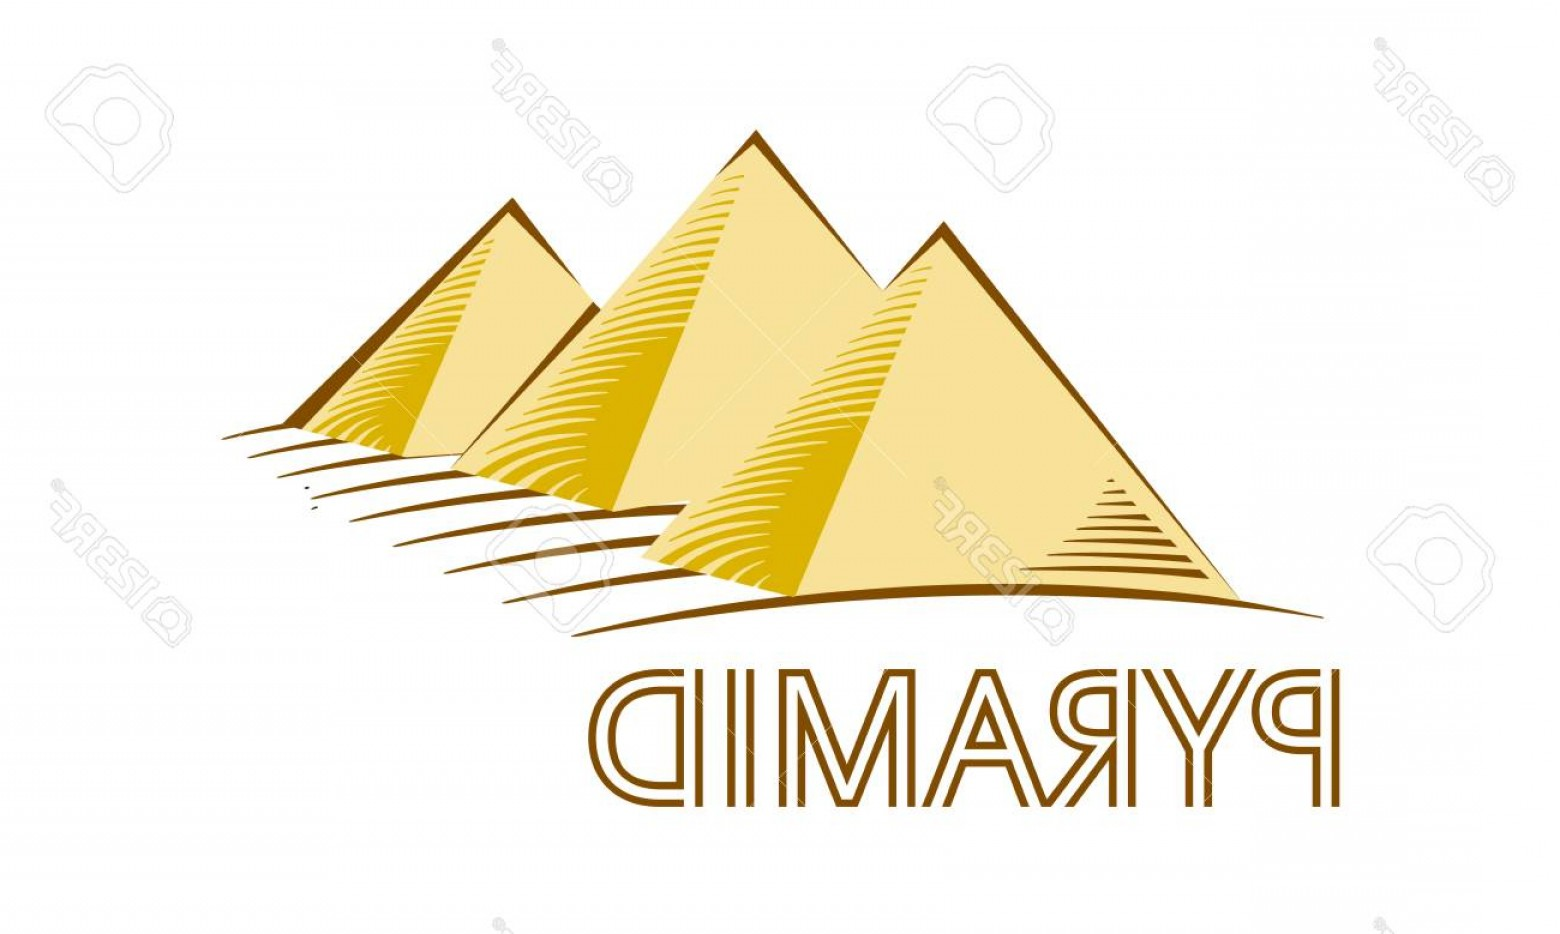 Piramids Vector Art: Photostock Vector Egyptian Pyramids Vector Logotype Simple Yellow Tetrahedron For Logo Vector Illustration Egypt Style